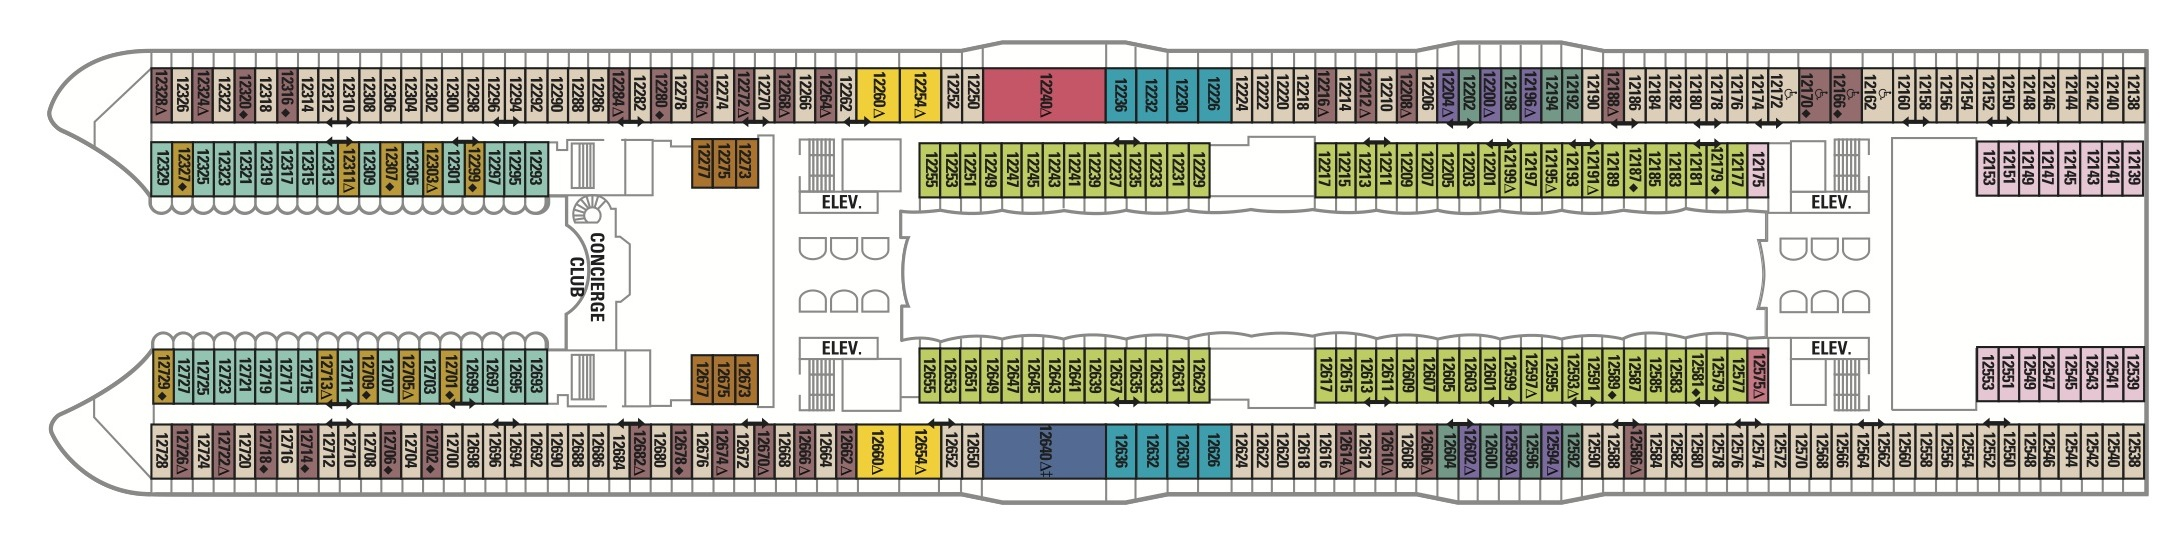 Rccl Allure Of The Seas Deck Plan Woodworking Service Online